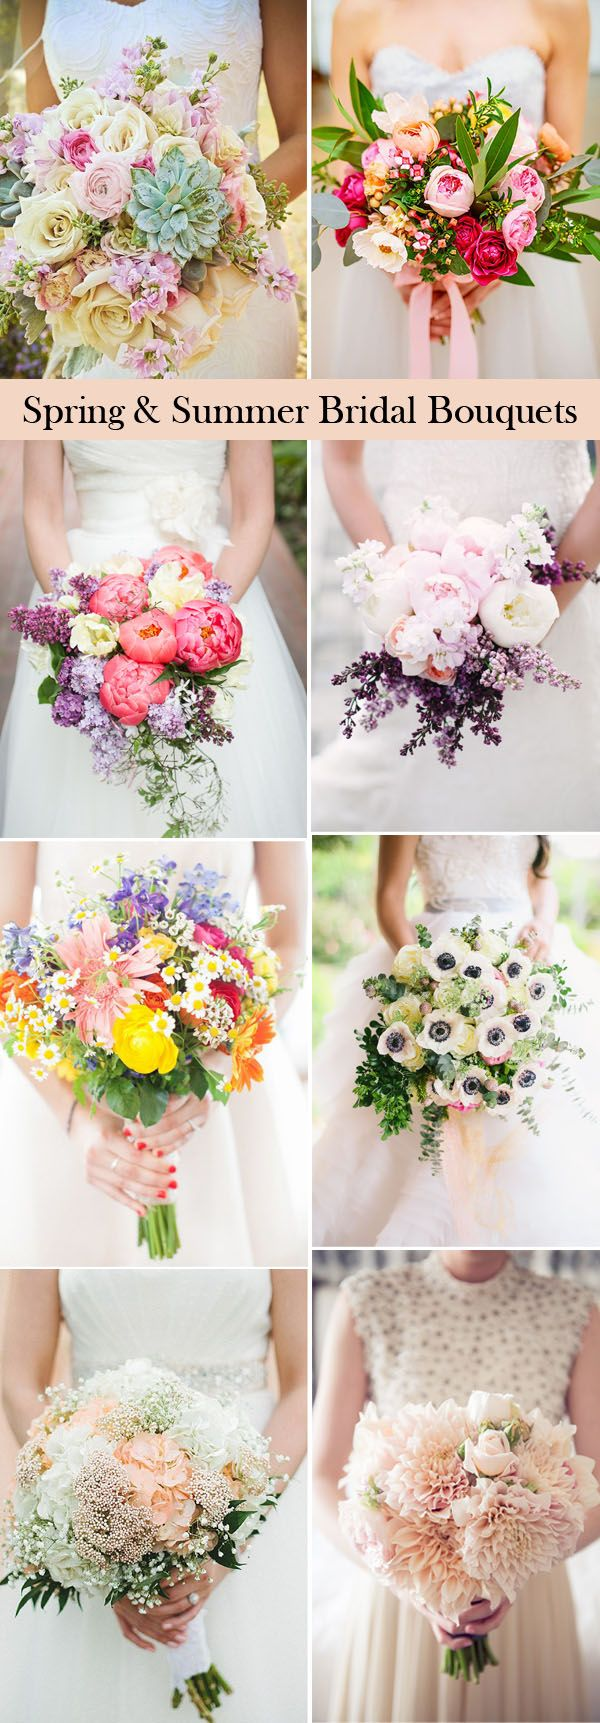 25 Swoon Worthy Spring Summer Wedding Bouquets Wedding Bouquets